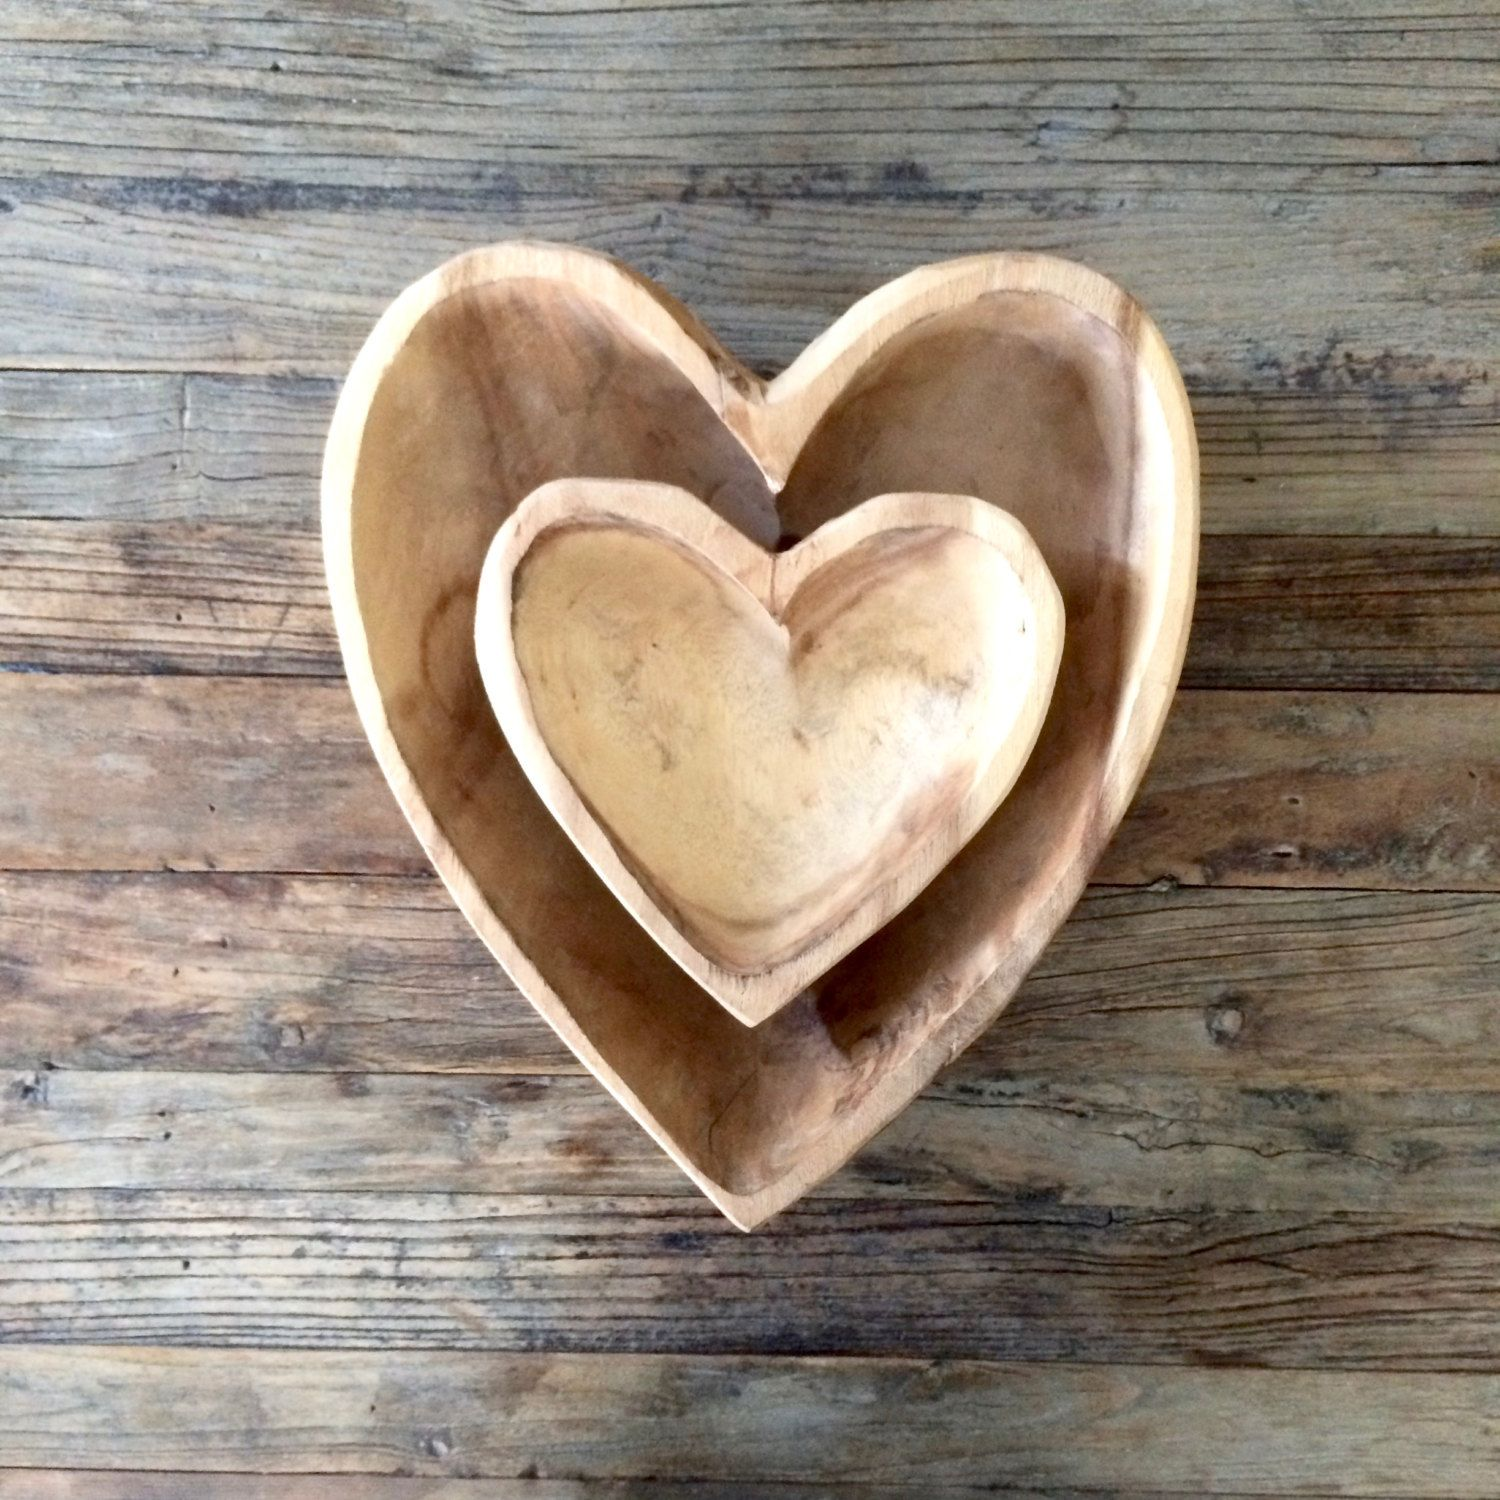 Hand Carved Wooden Heart Bowls Wooden Hearts Heart Shaped Bowls Hand Carved